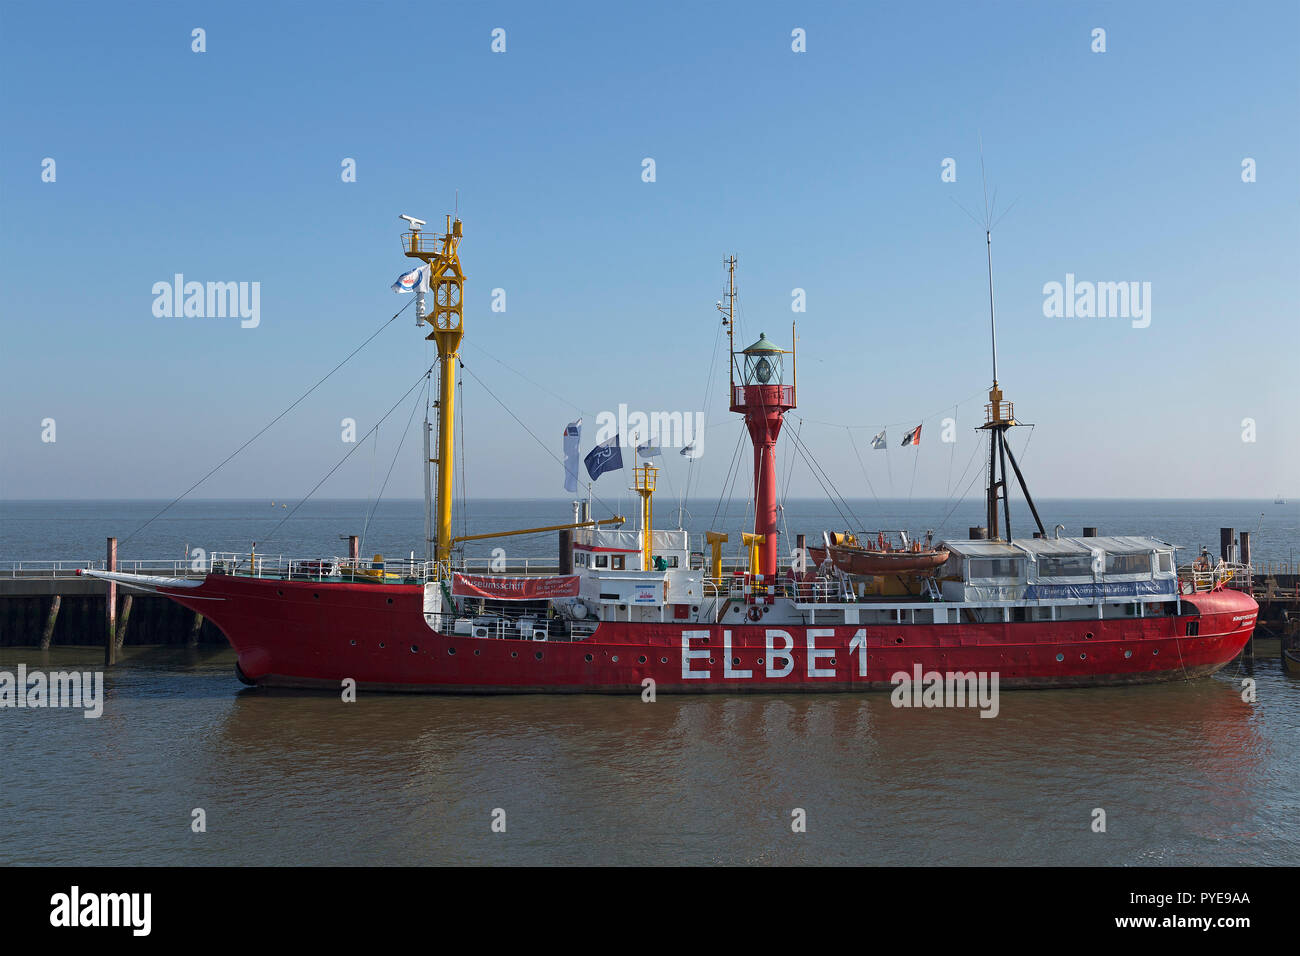 lightship Elbe 1 at the harbour, Cuxhaven, Lower Saxony, Germany - Stock Image